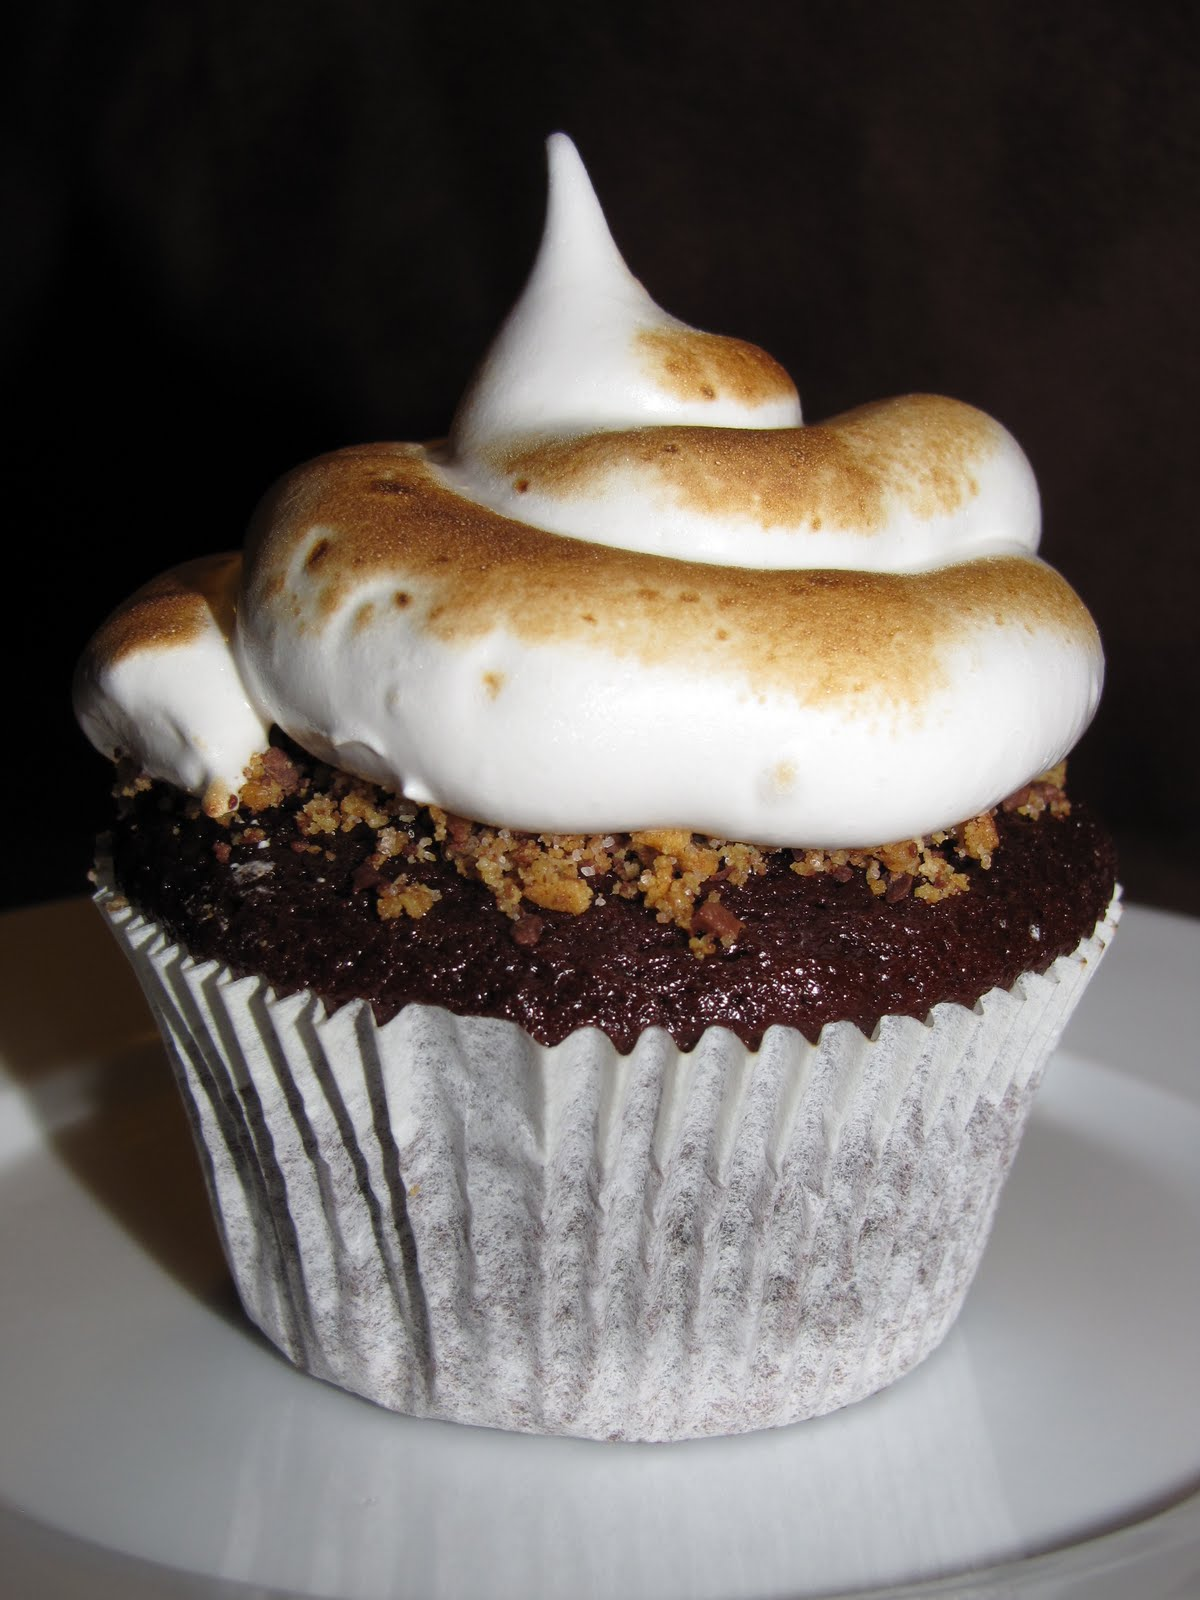 ... to Cook: Chocolate Graham Cracker Cupcakes with Toasted Marshmallow